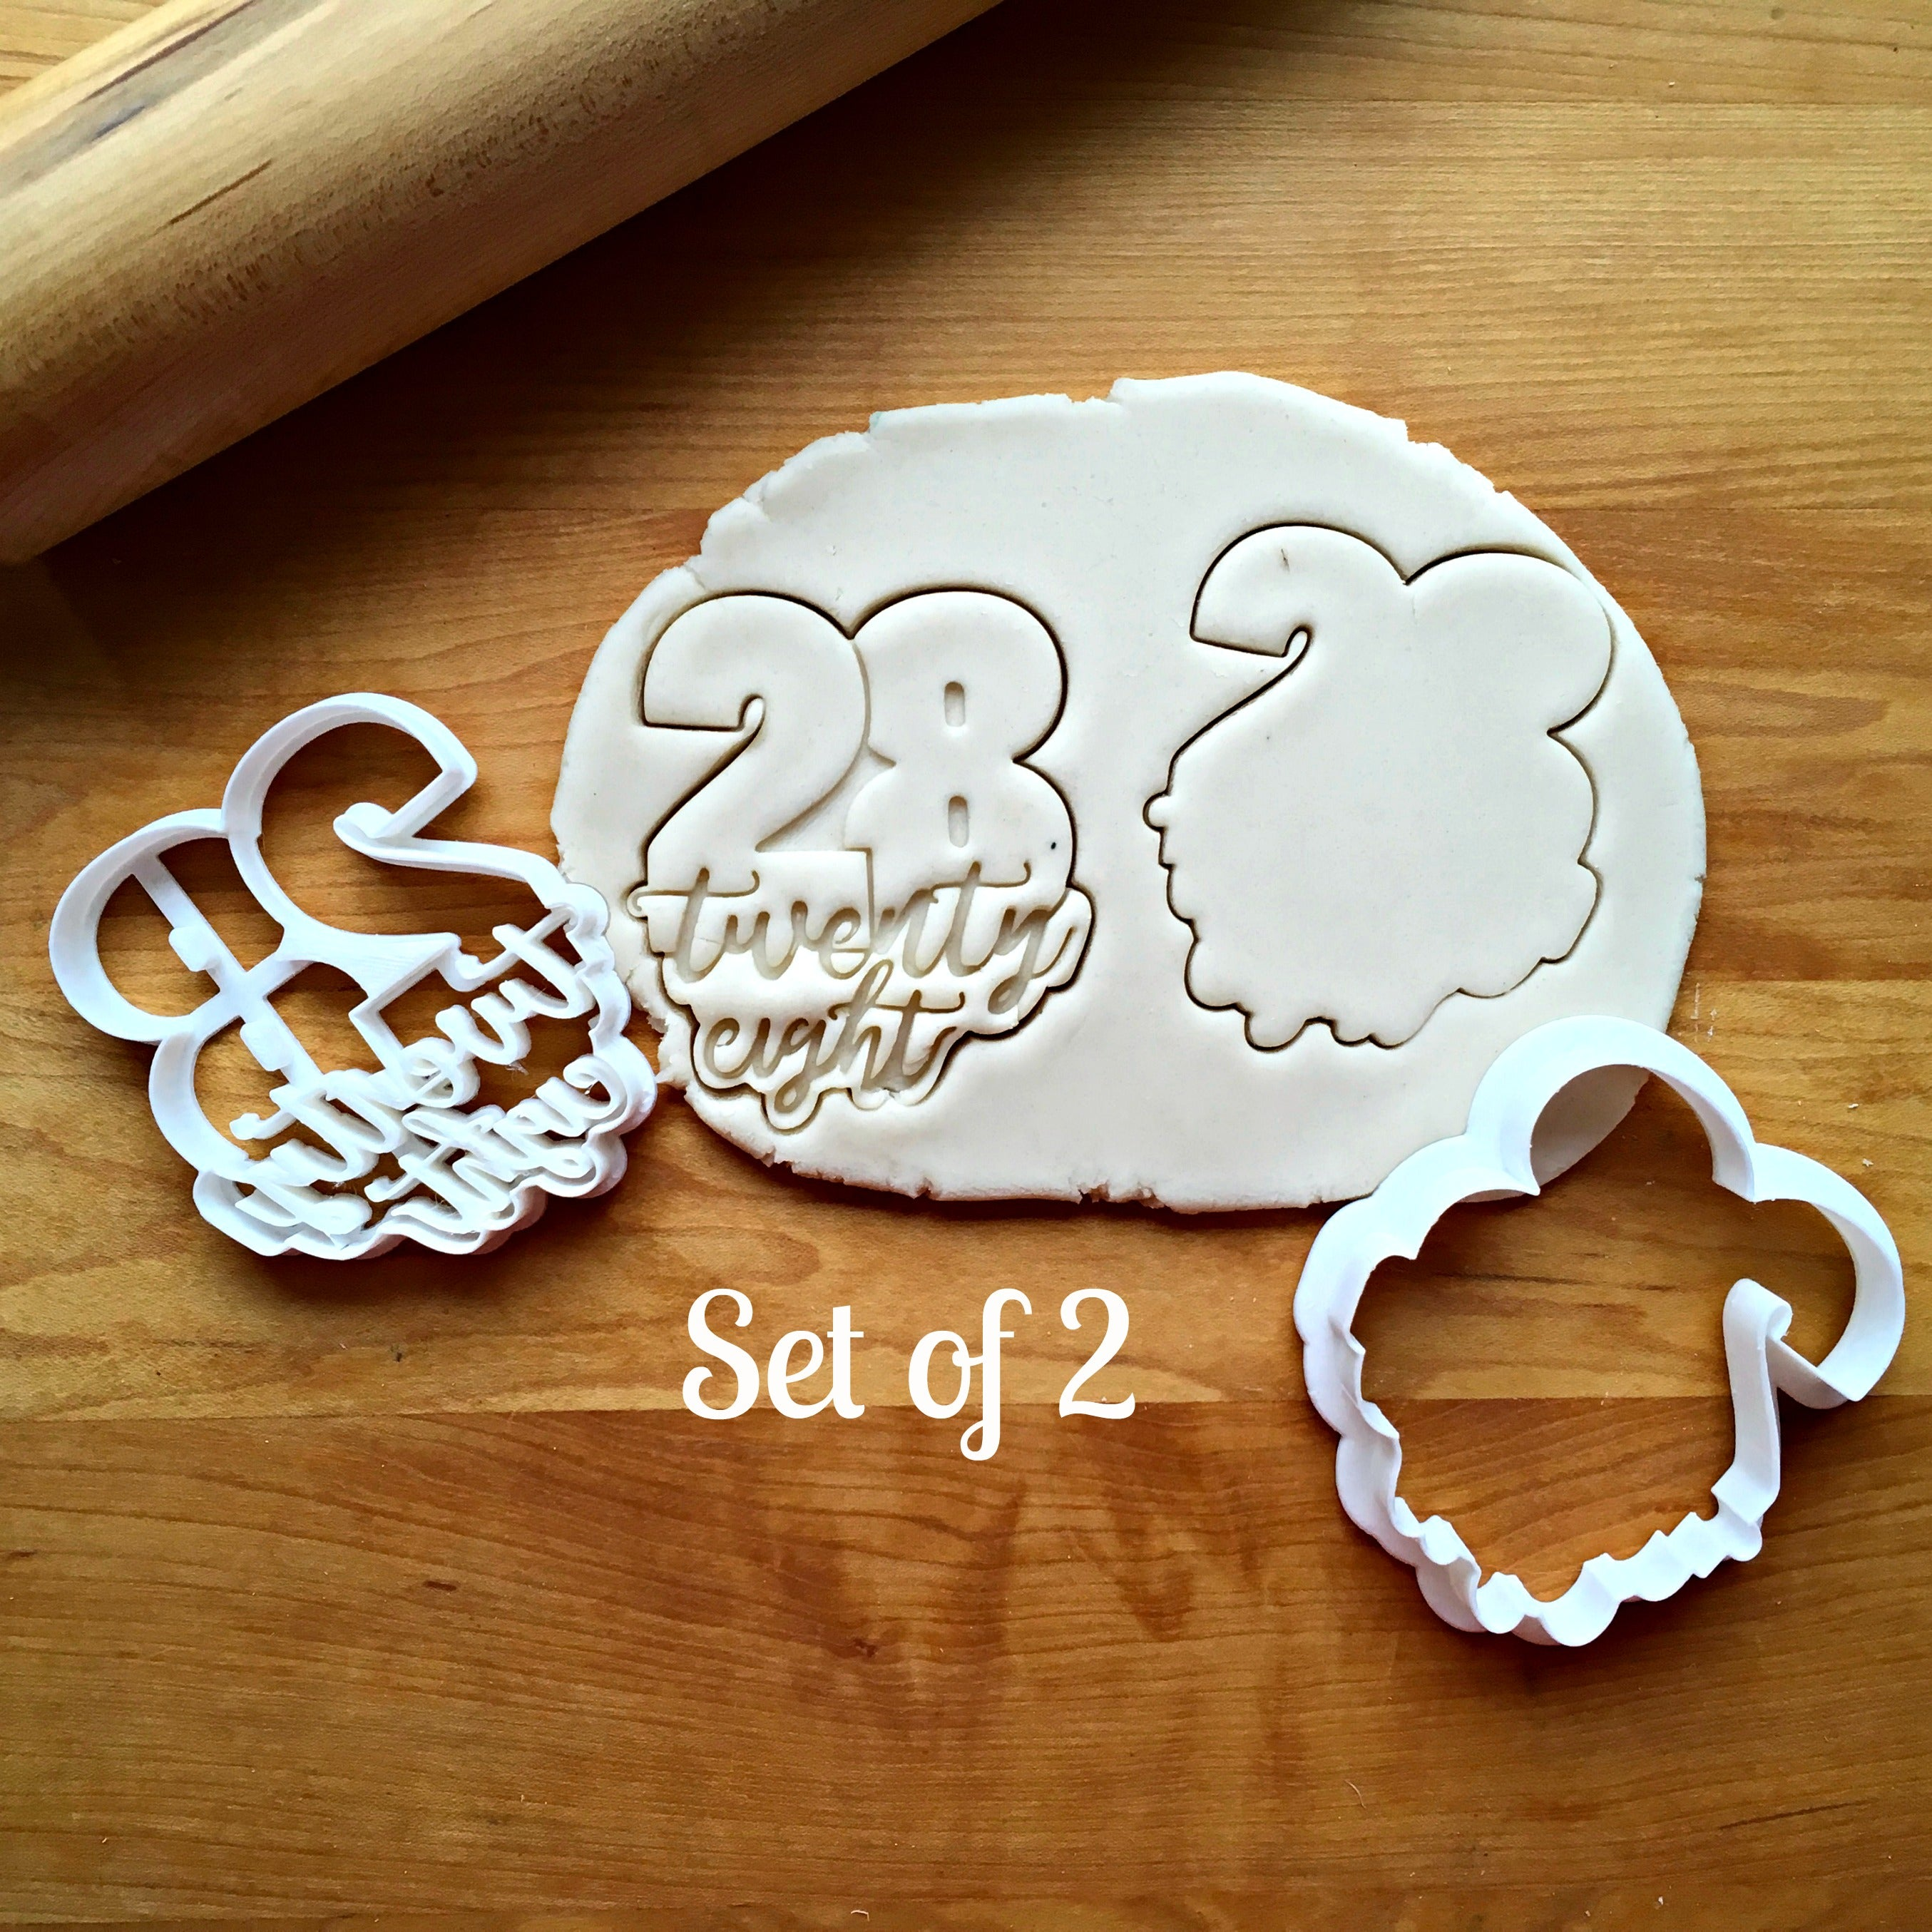 Set of 2 Lettered Number 28 Cookie Cutters/Dishwasher Safe